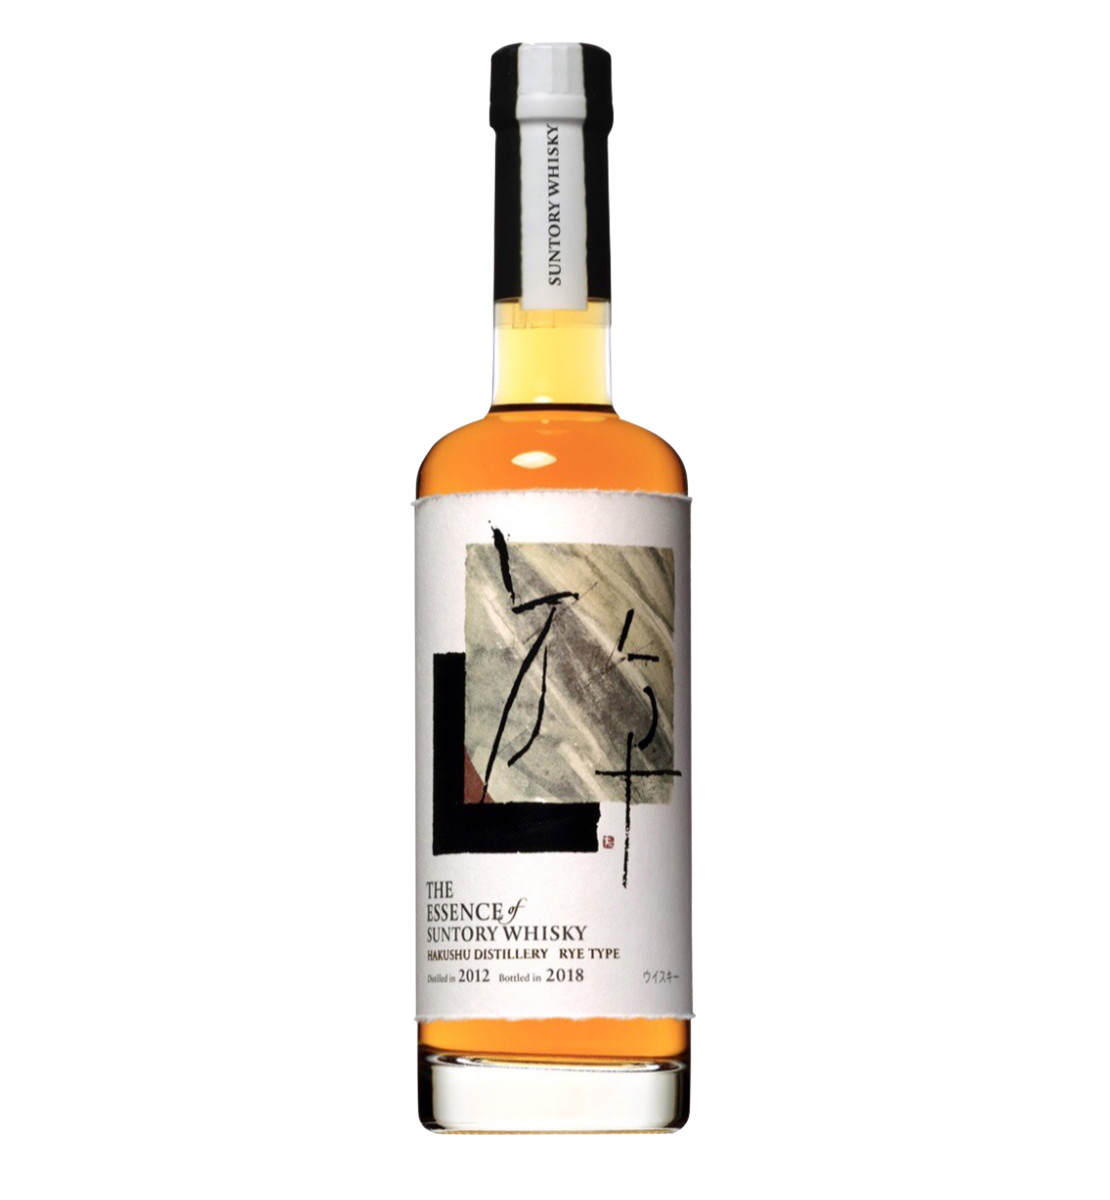 Suntory releases their Essence of Suntory Whisky line